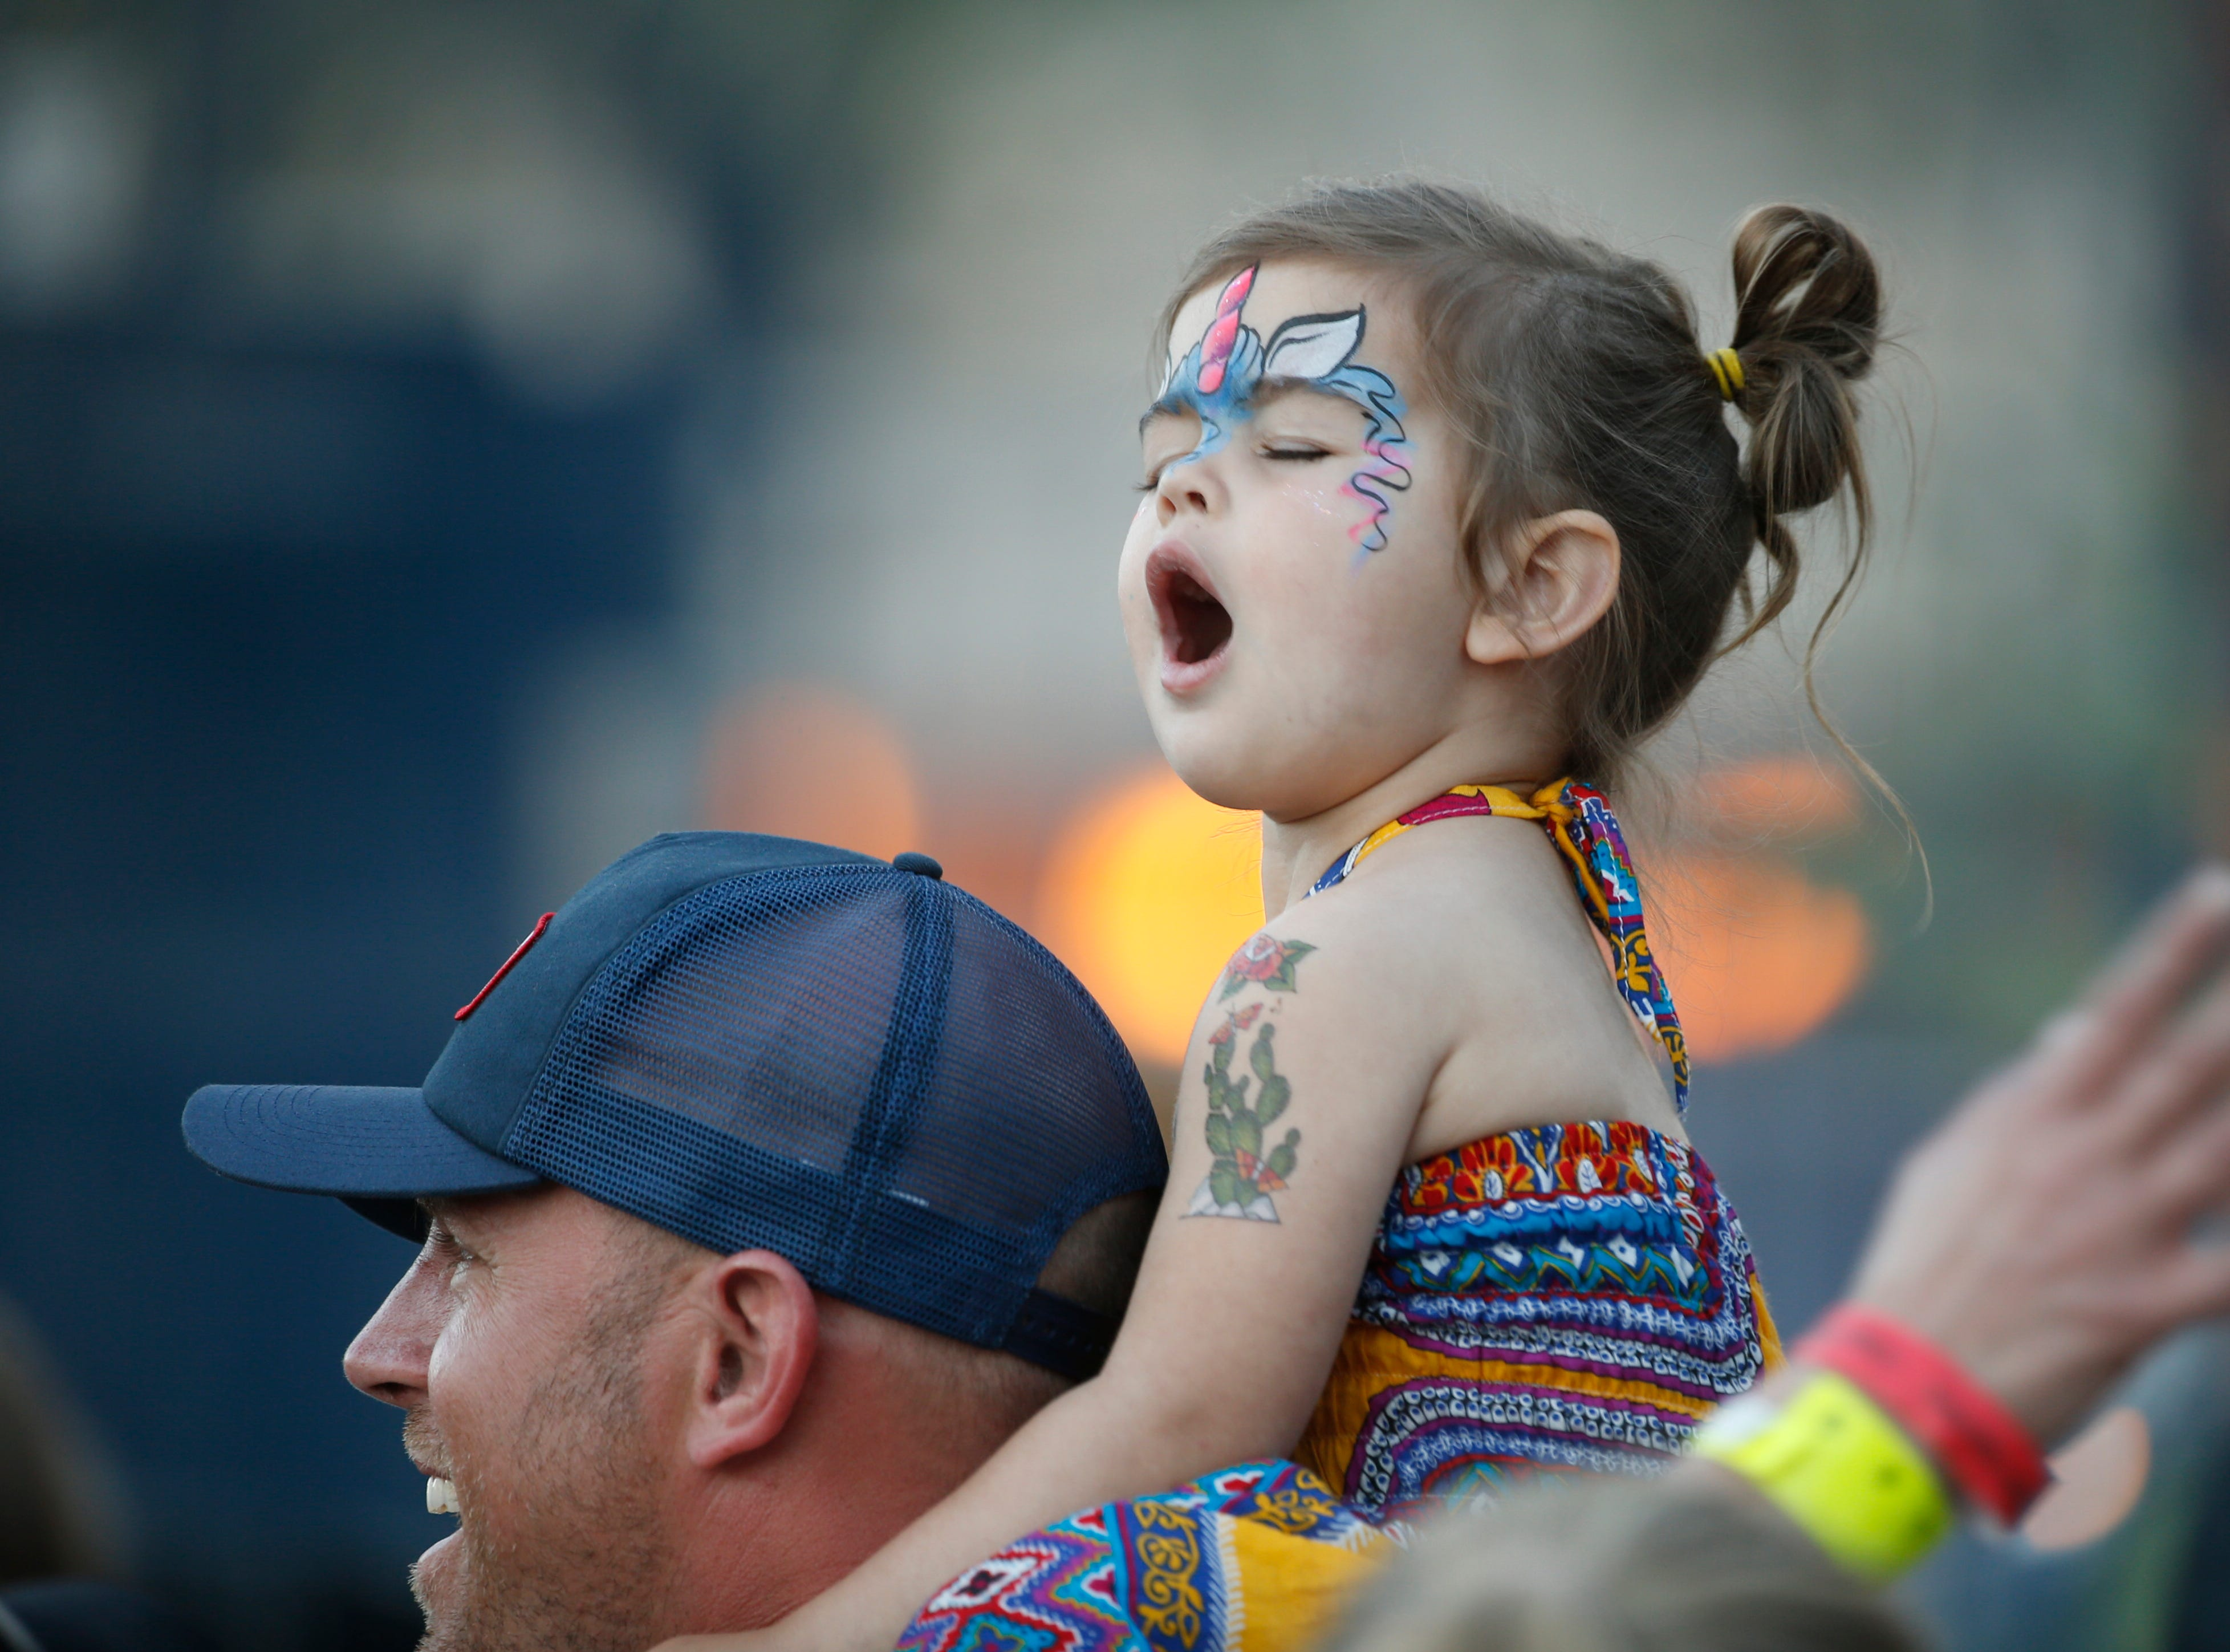 Marcus DeGraff carries his daughter Addie DeGraff as she sings during House of Treezus' performance during McDowell Mountain Music Festival in Phoenix on March 3, 2019.